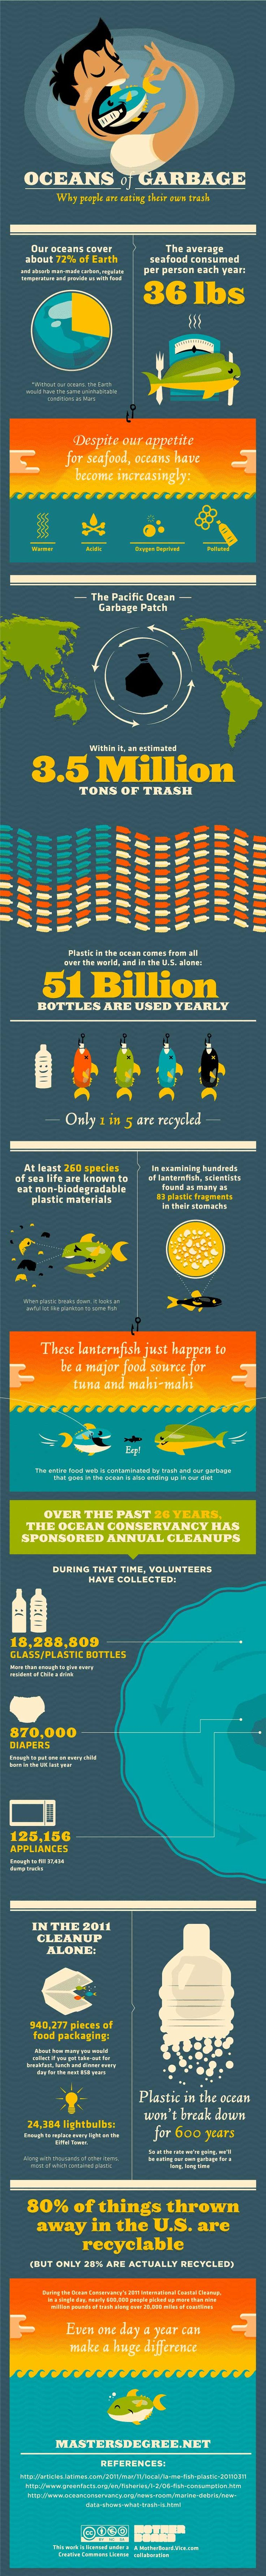 Why are people eating their own trash? #food #environment #trash #infographic